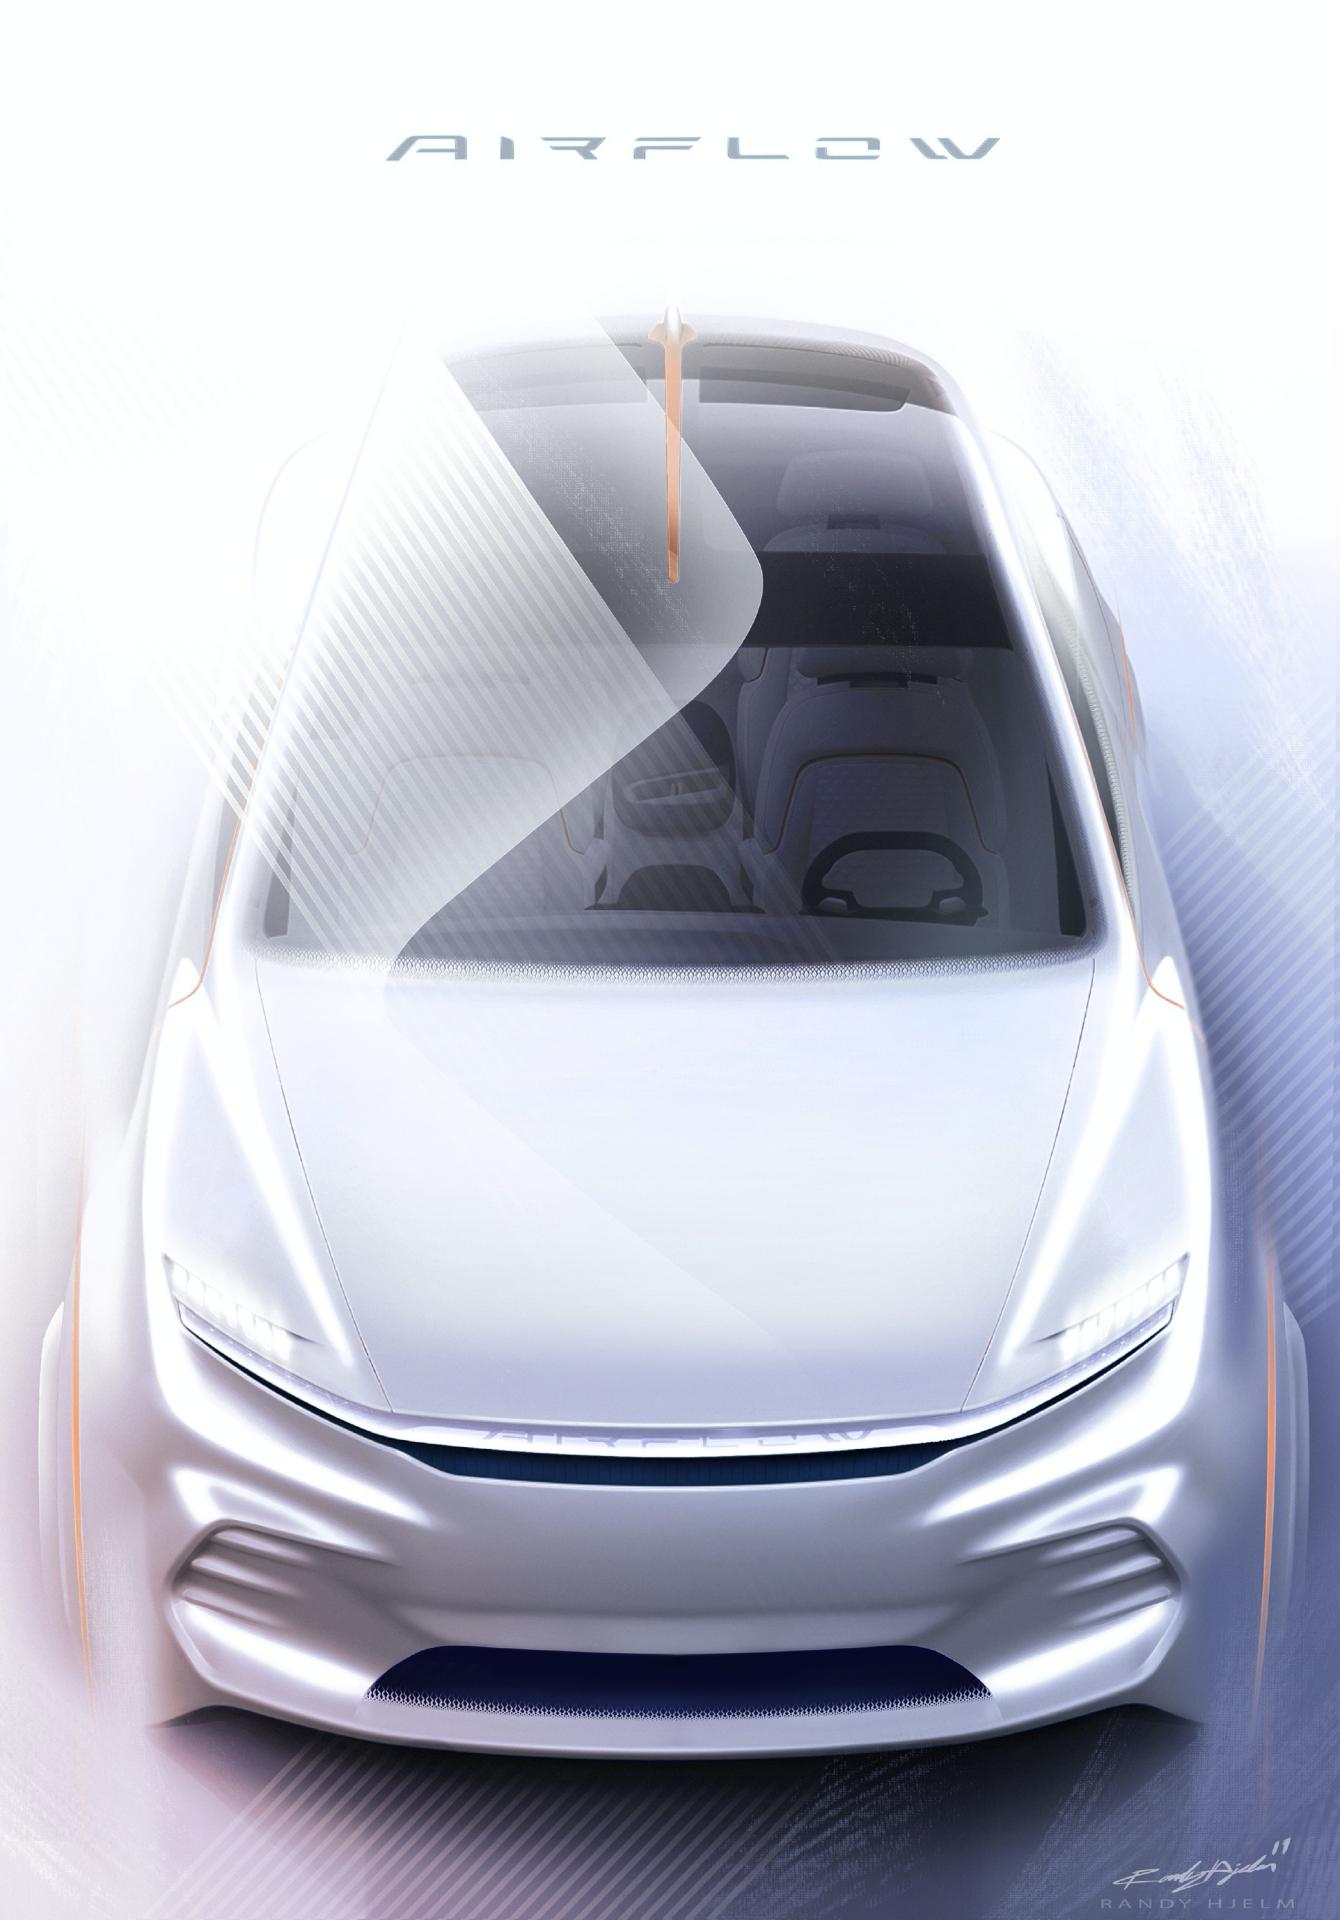 2020-Chrysler-Airflow-Vision-concept-9